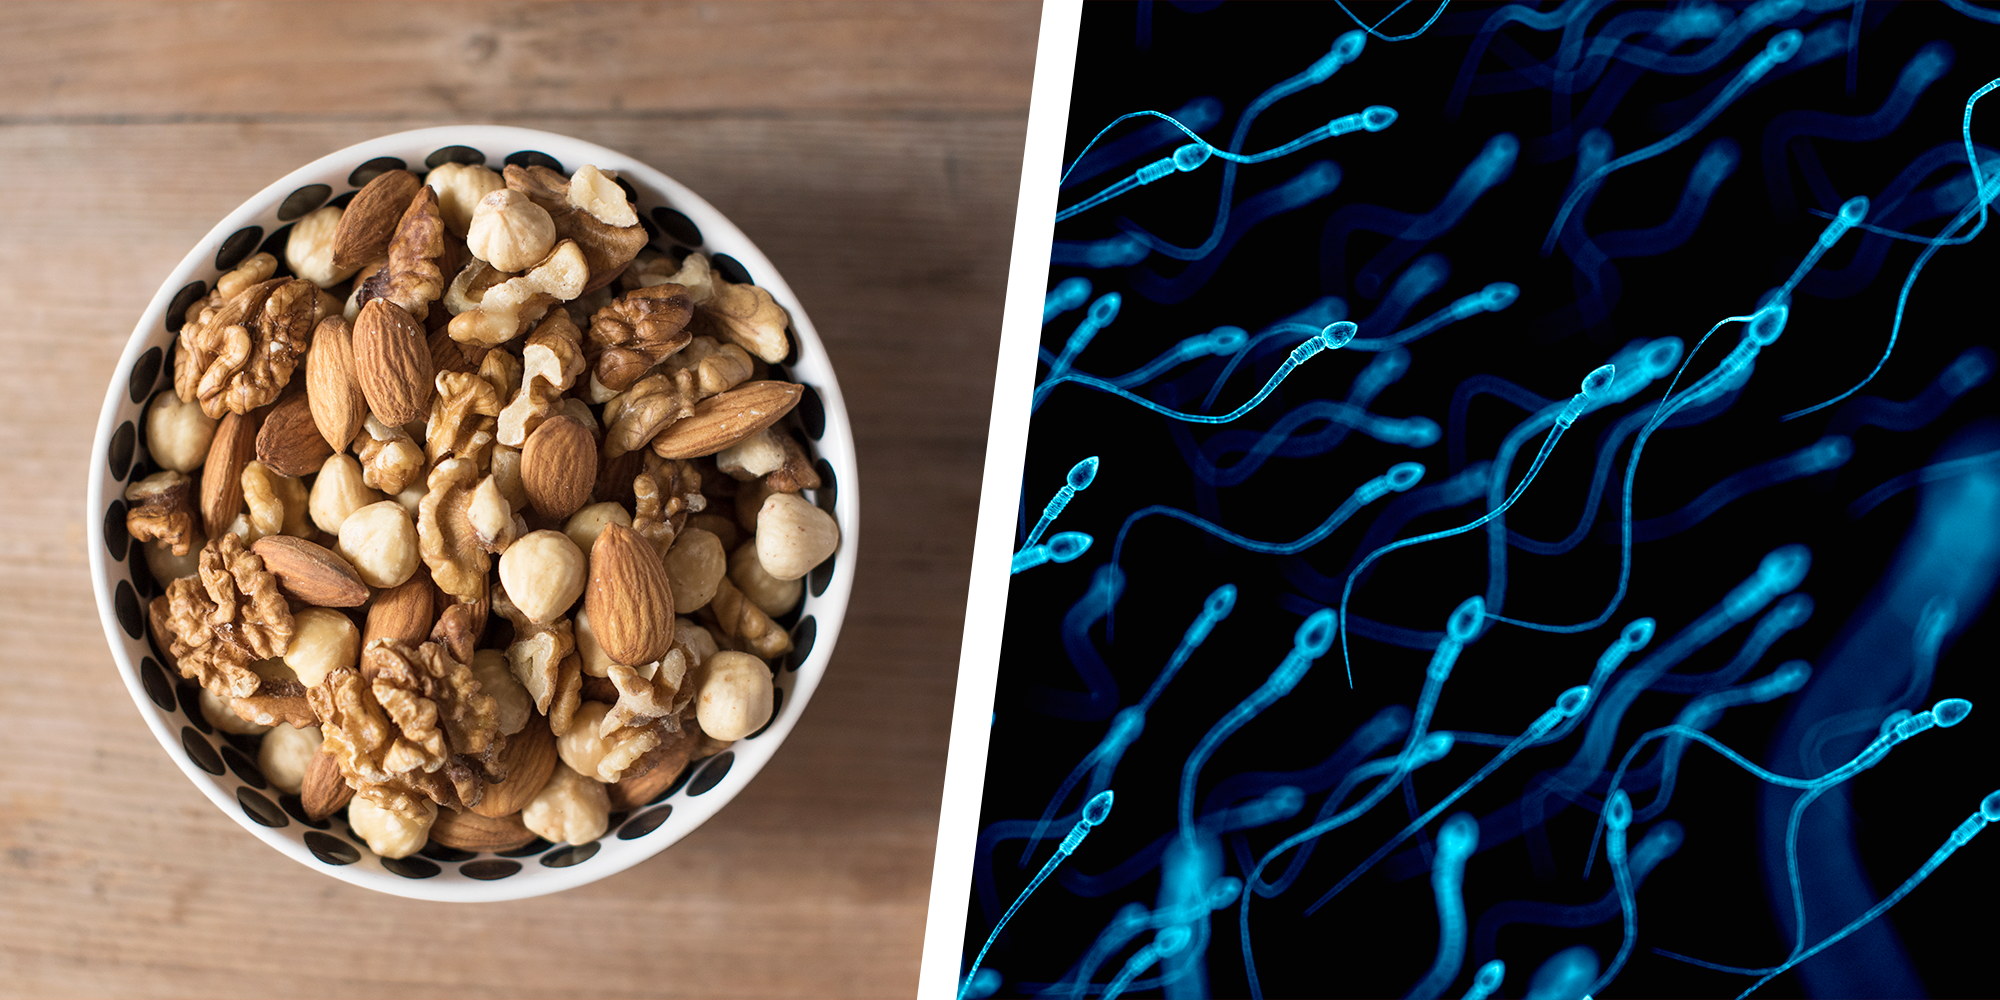 Eating Nuts Every Day Could Make Sperm Stronger